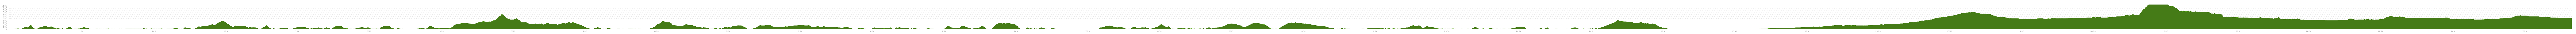 Elevation profile Cycle Tour Dubrovnik - EV8 - CAAR - Munich